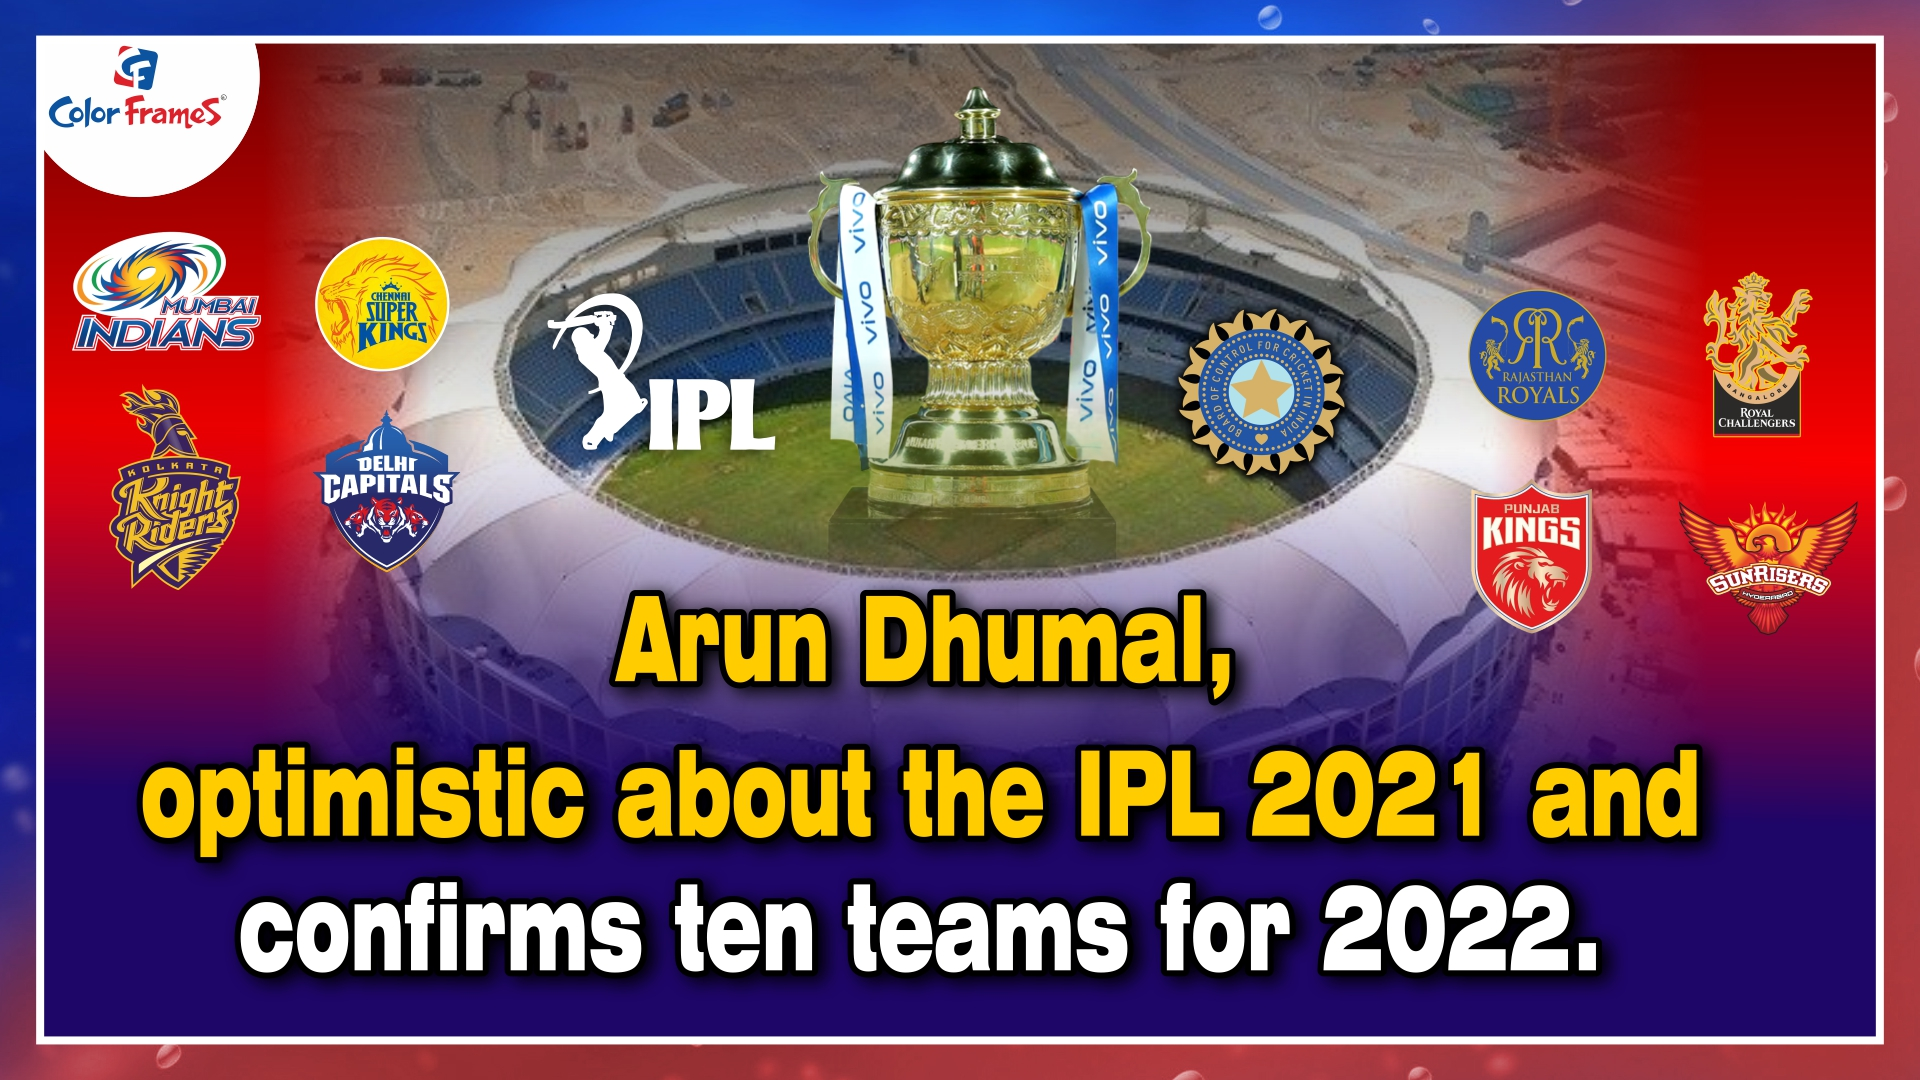 Arun Dhumal, the BCCI treasurer, is optimistic about the IPL 2021 season and has confirmed ten teams for the 2022 season.